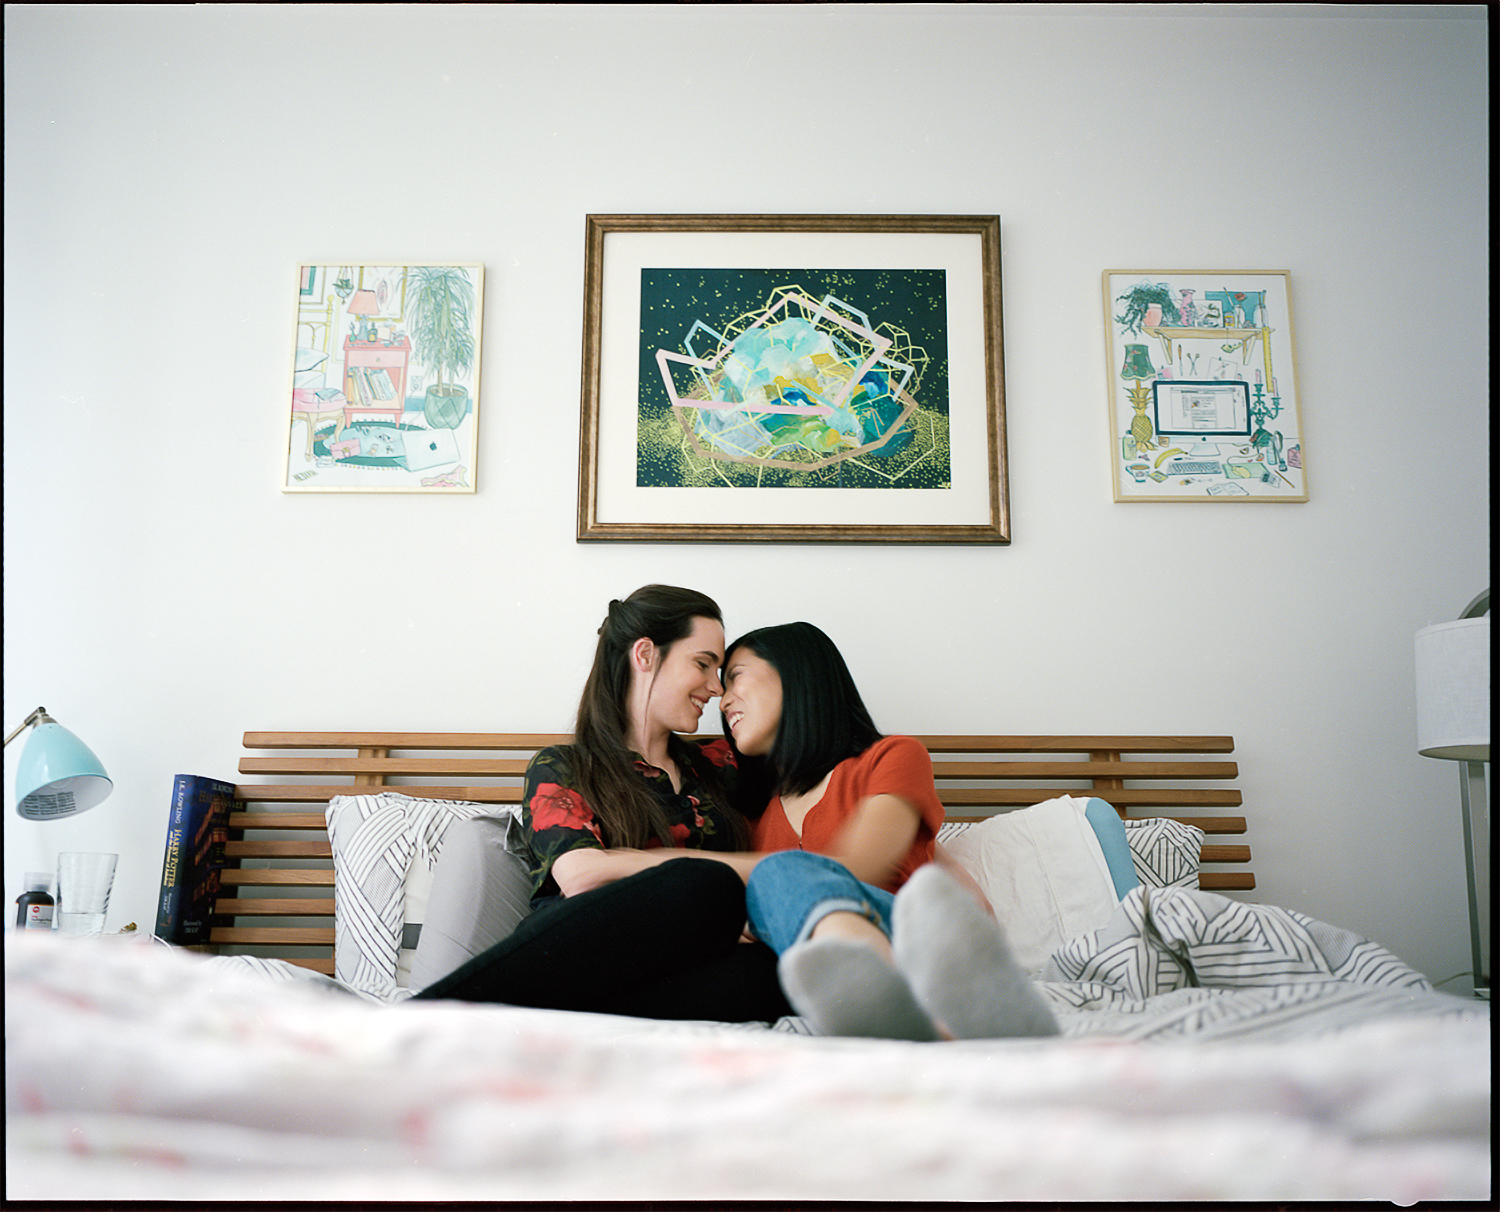 Julie-Steph-At-Home-Session-Mamiya-7-Kodak-Portra-400-1-4.JPG